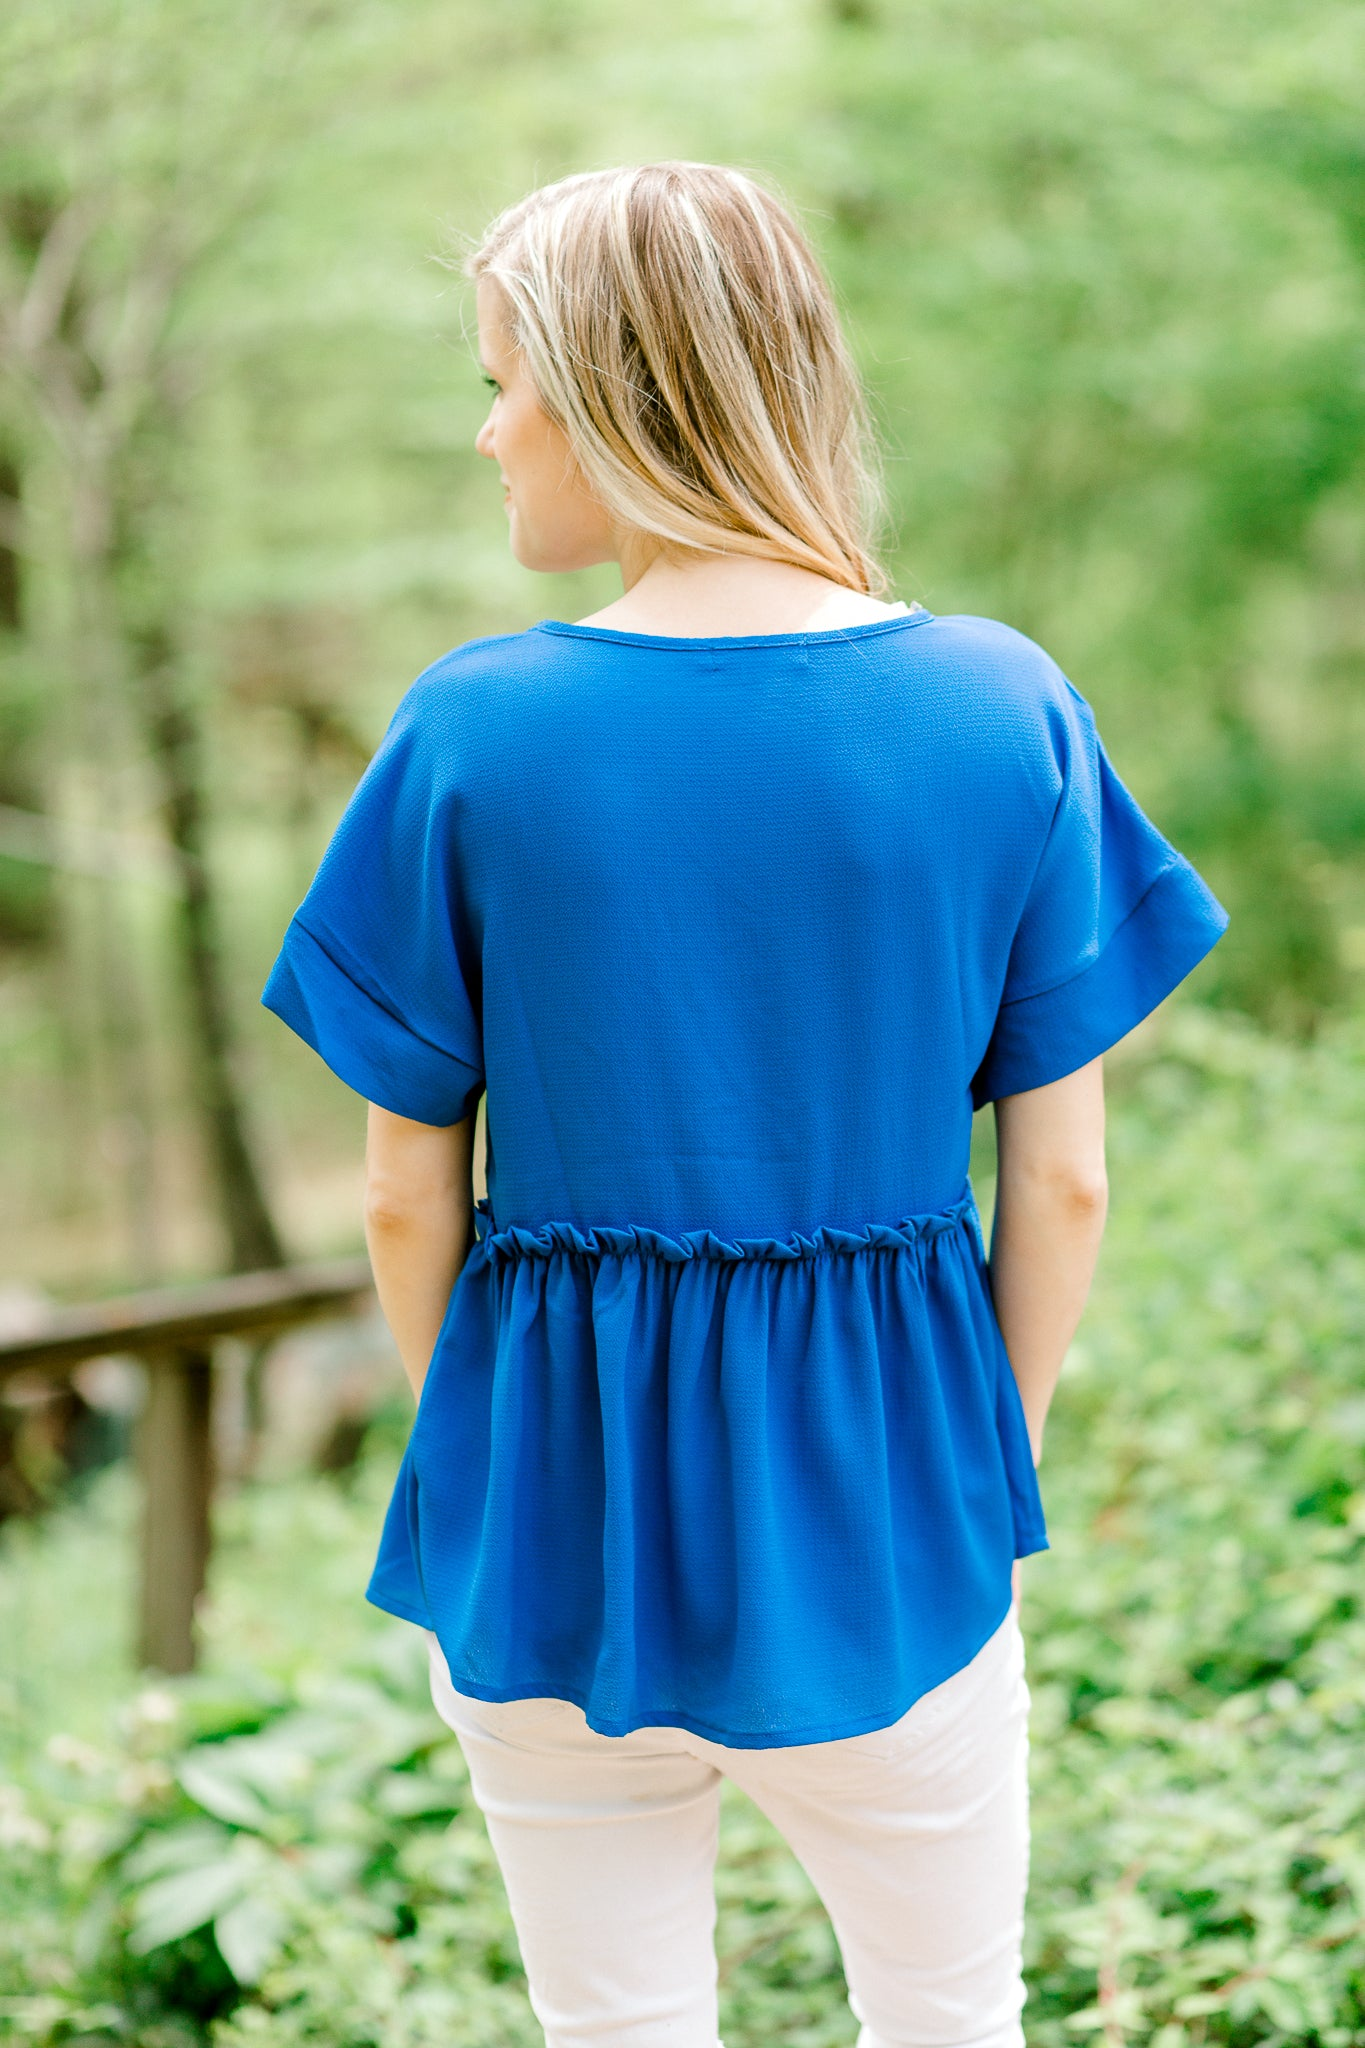 royal blue top back view - epiphany boutiques